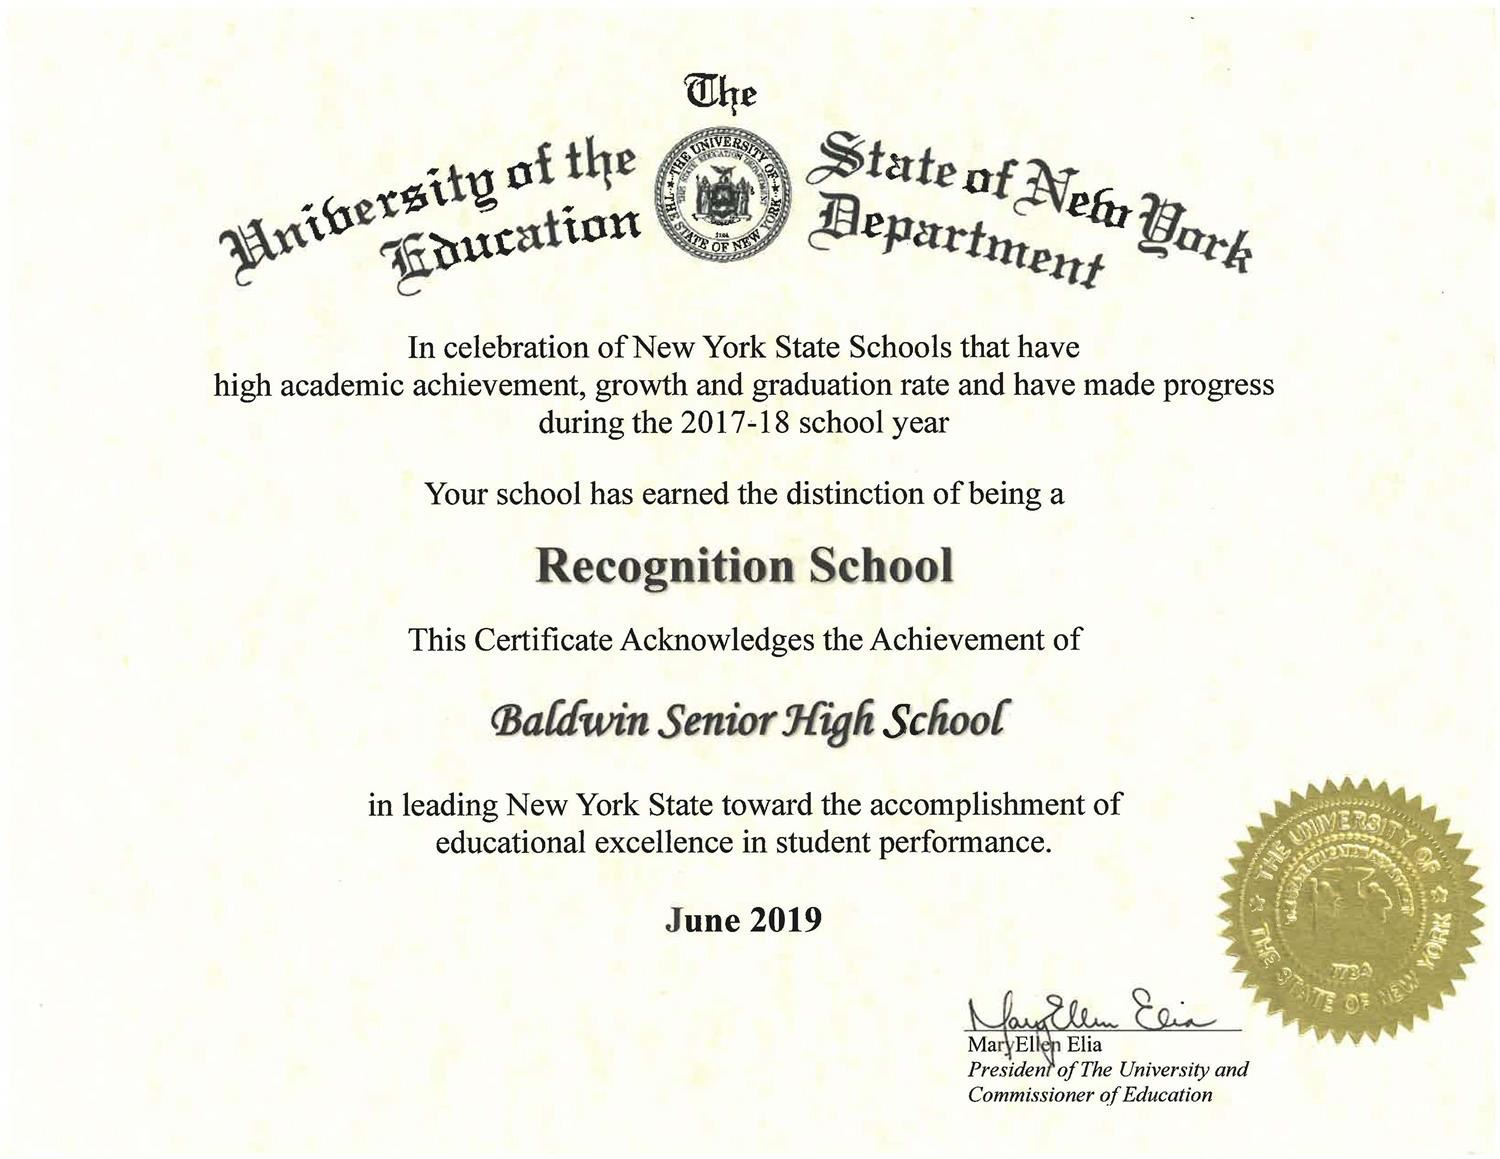 New York State Recognition School